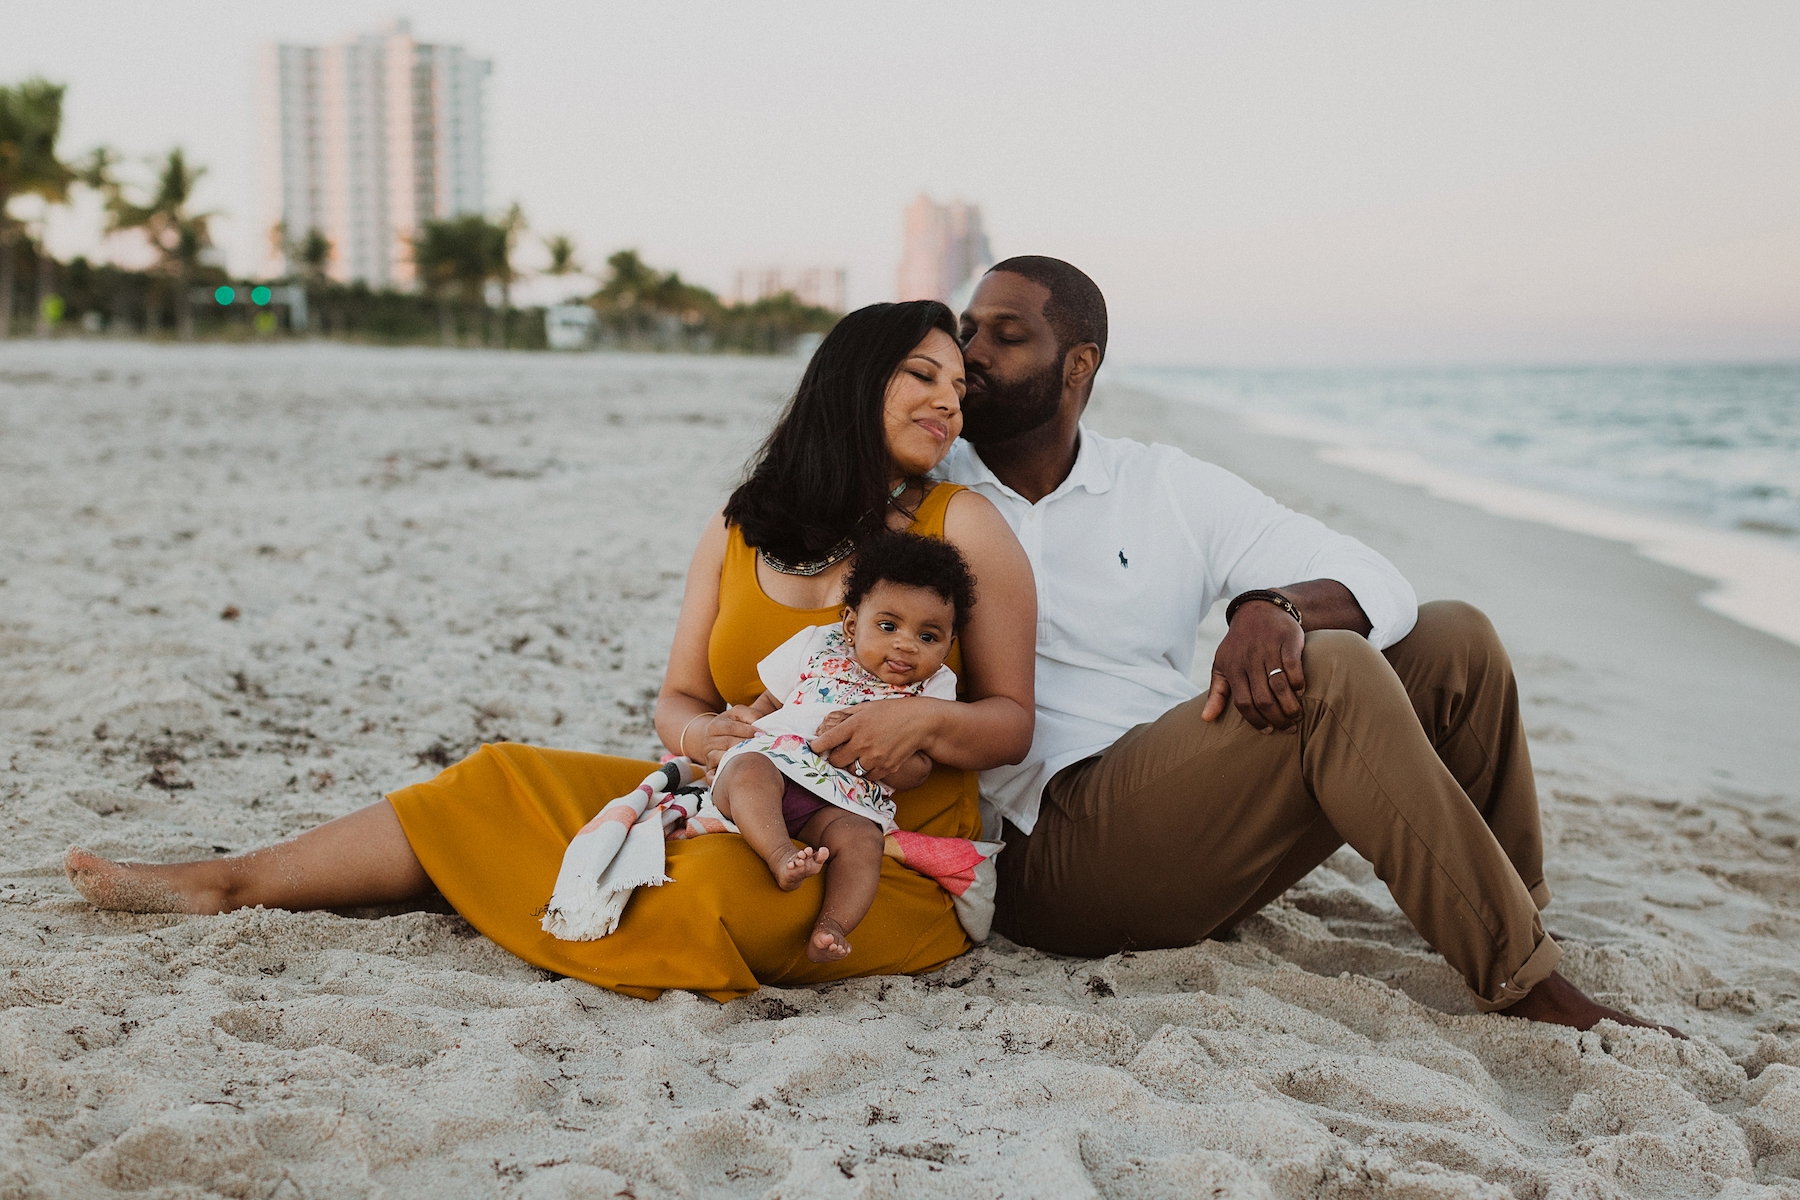 A man kisses the side of his wife's forehead while they sit on the beach with their baby in Ft Lauderdale, USA.